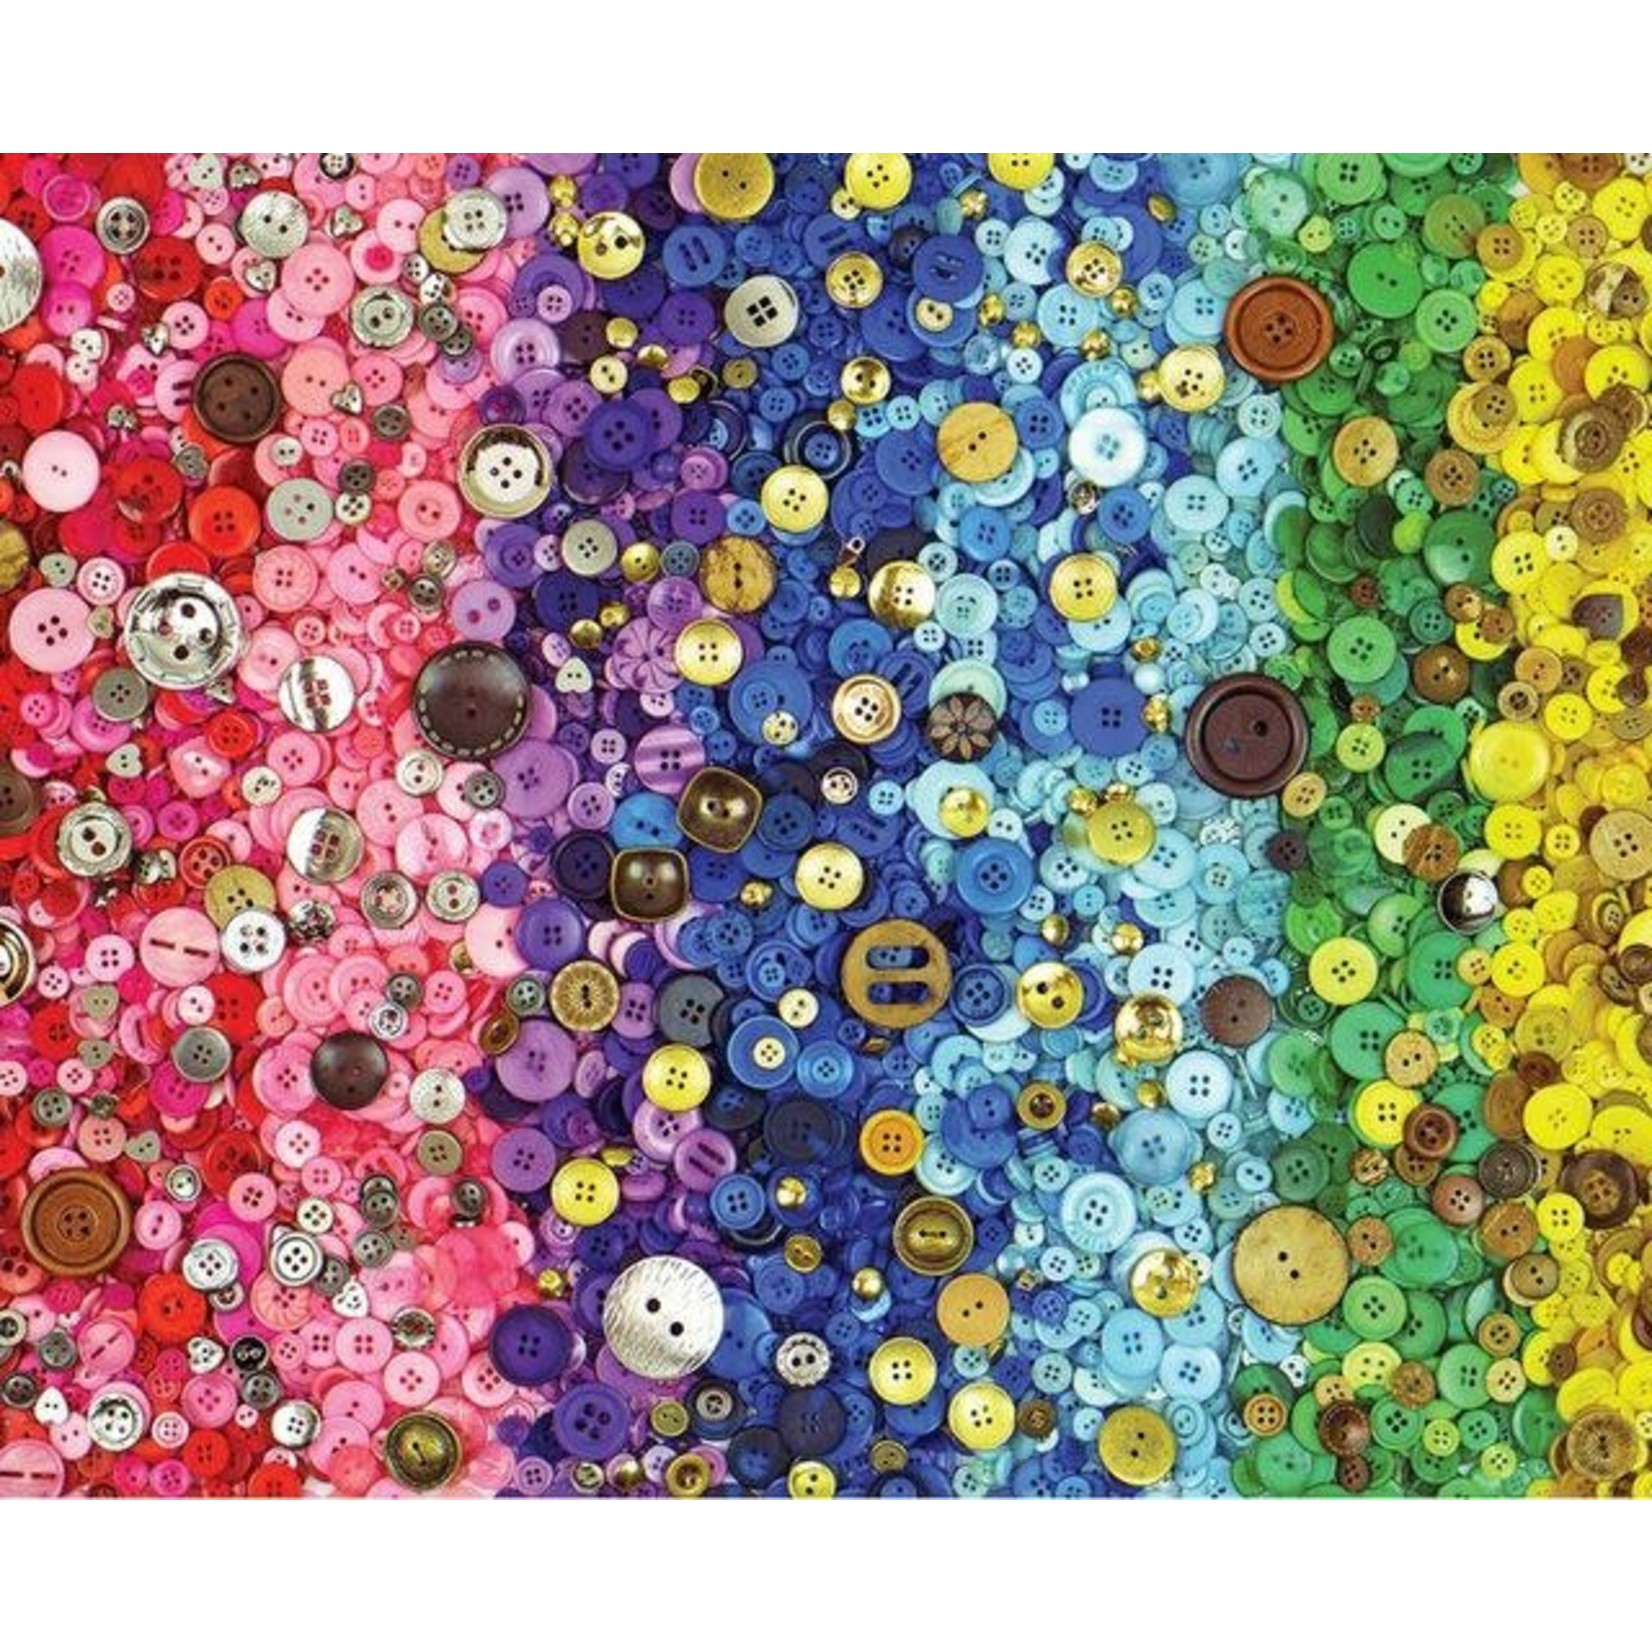 BUNCHES OF BUTTONS PUZZLE